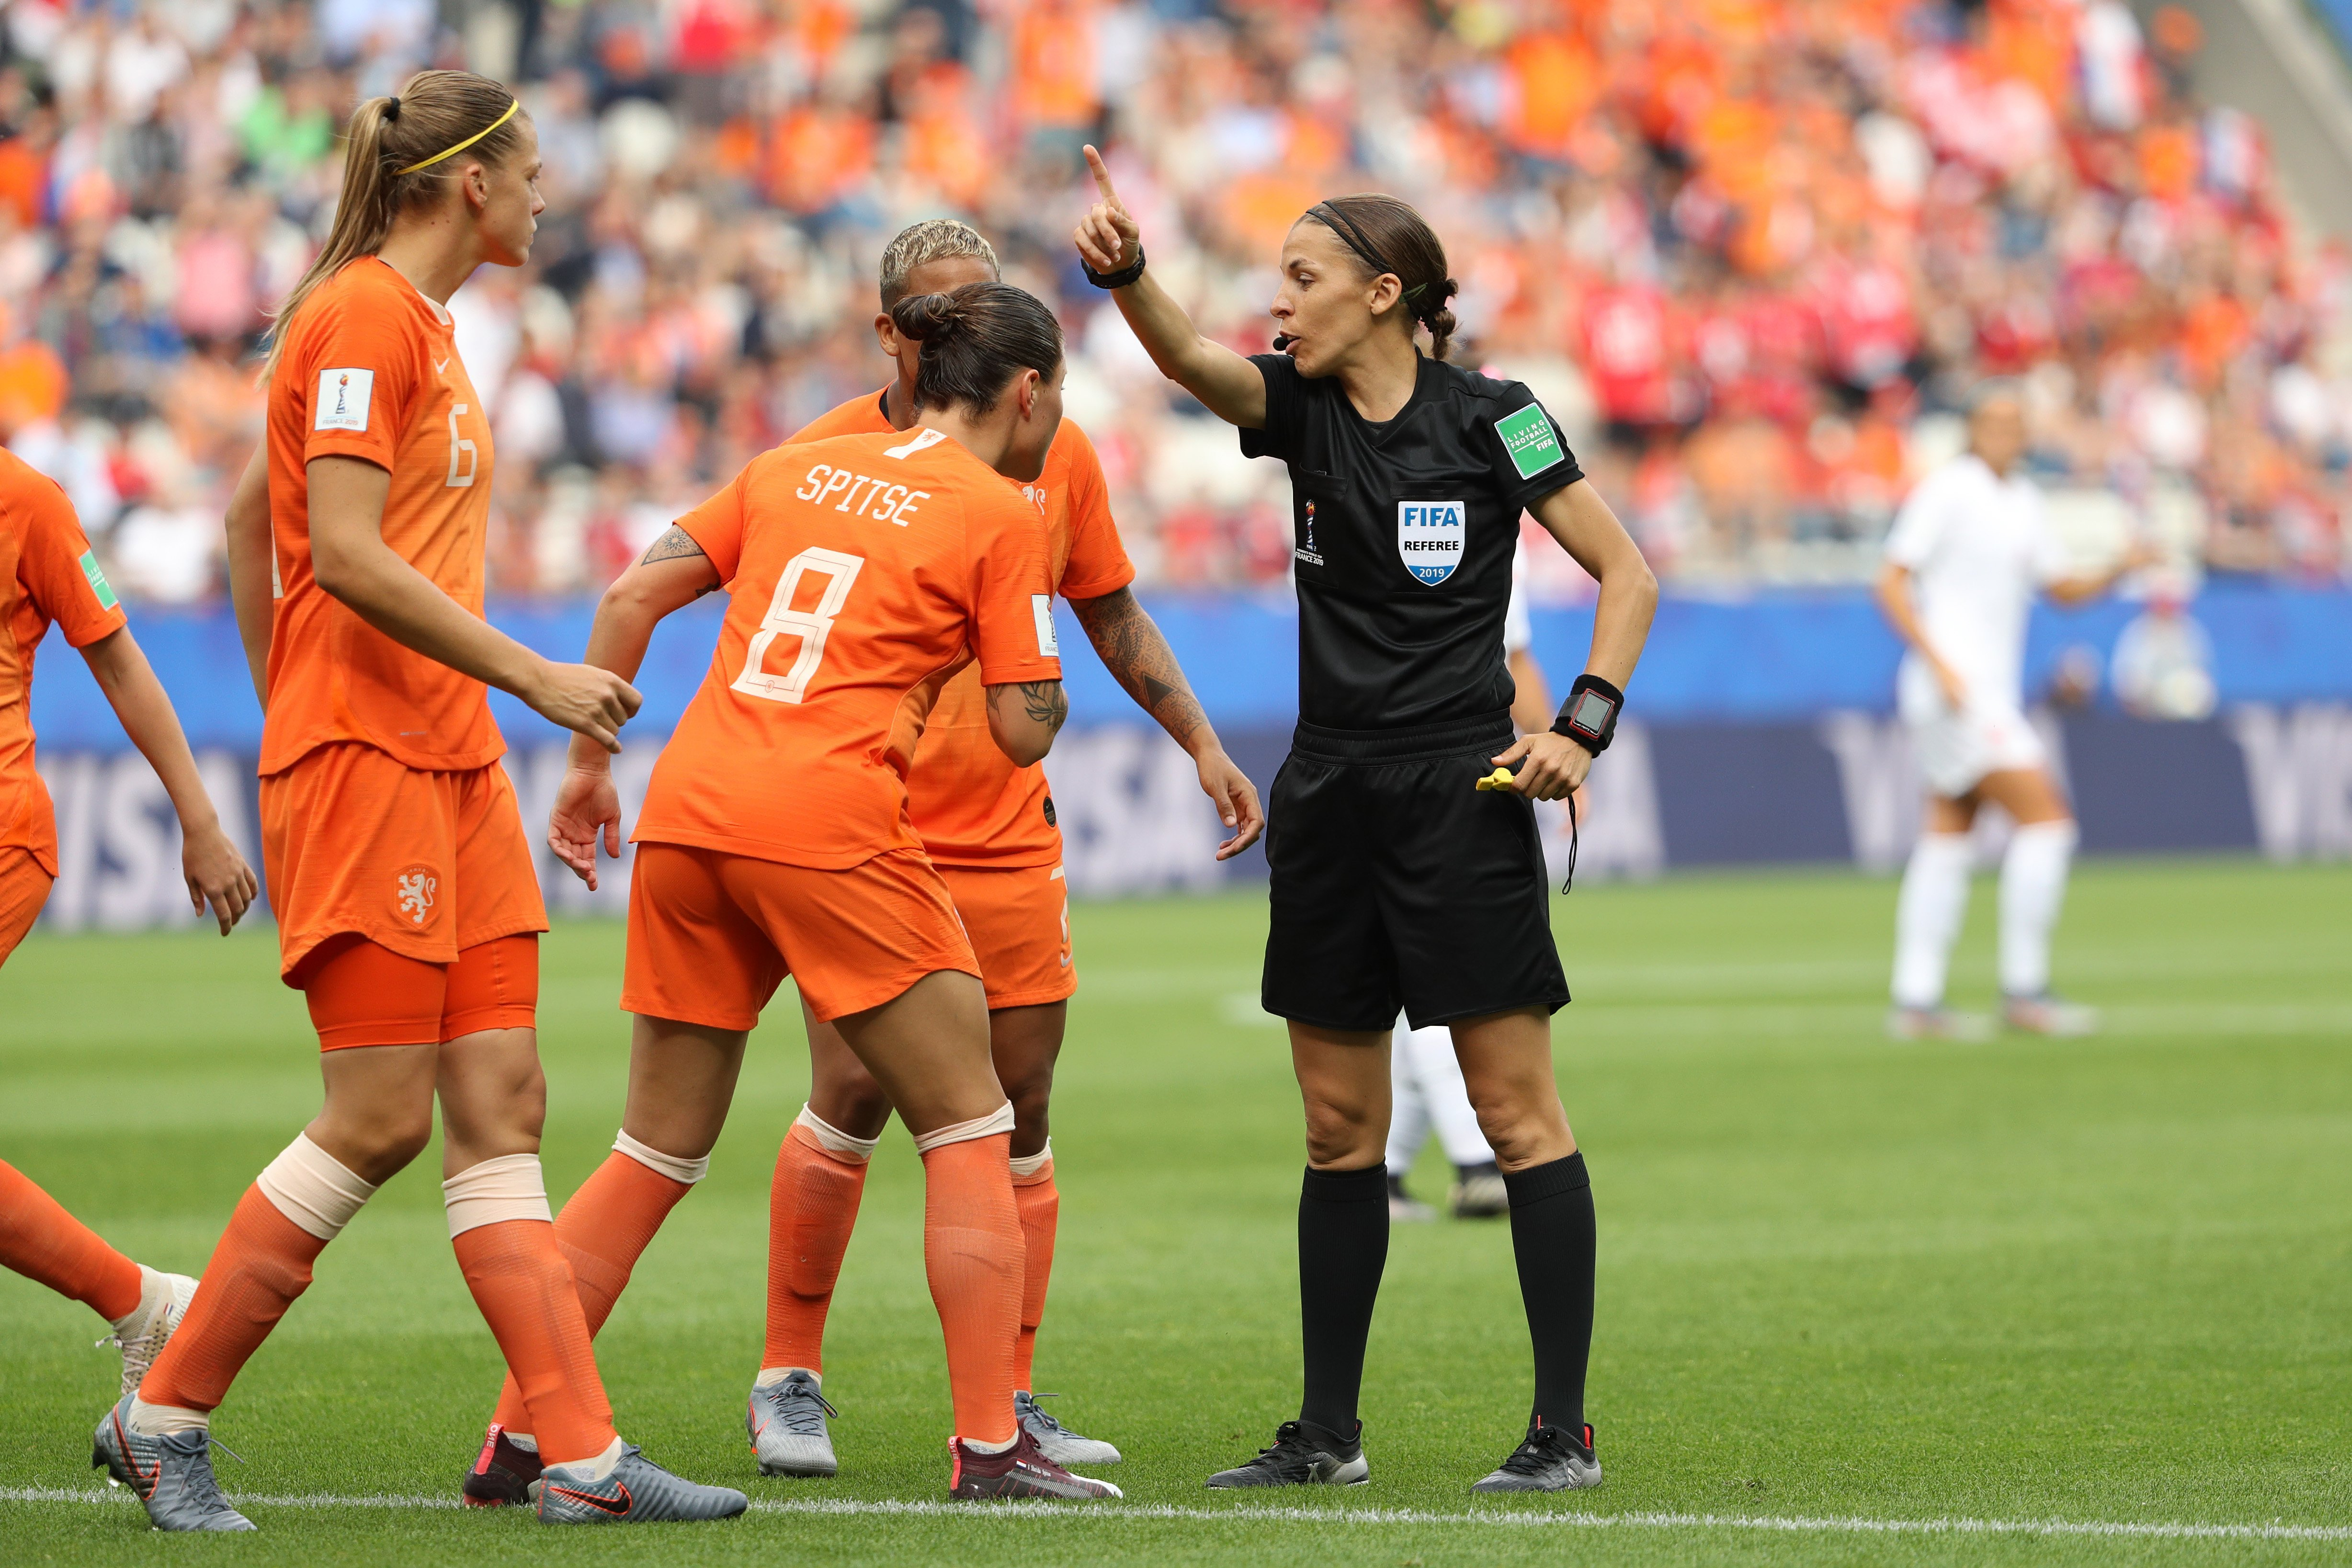 Super Cup: Referee Stephanie Frappart 'not afraid' as she prepares to make history